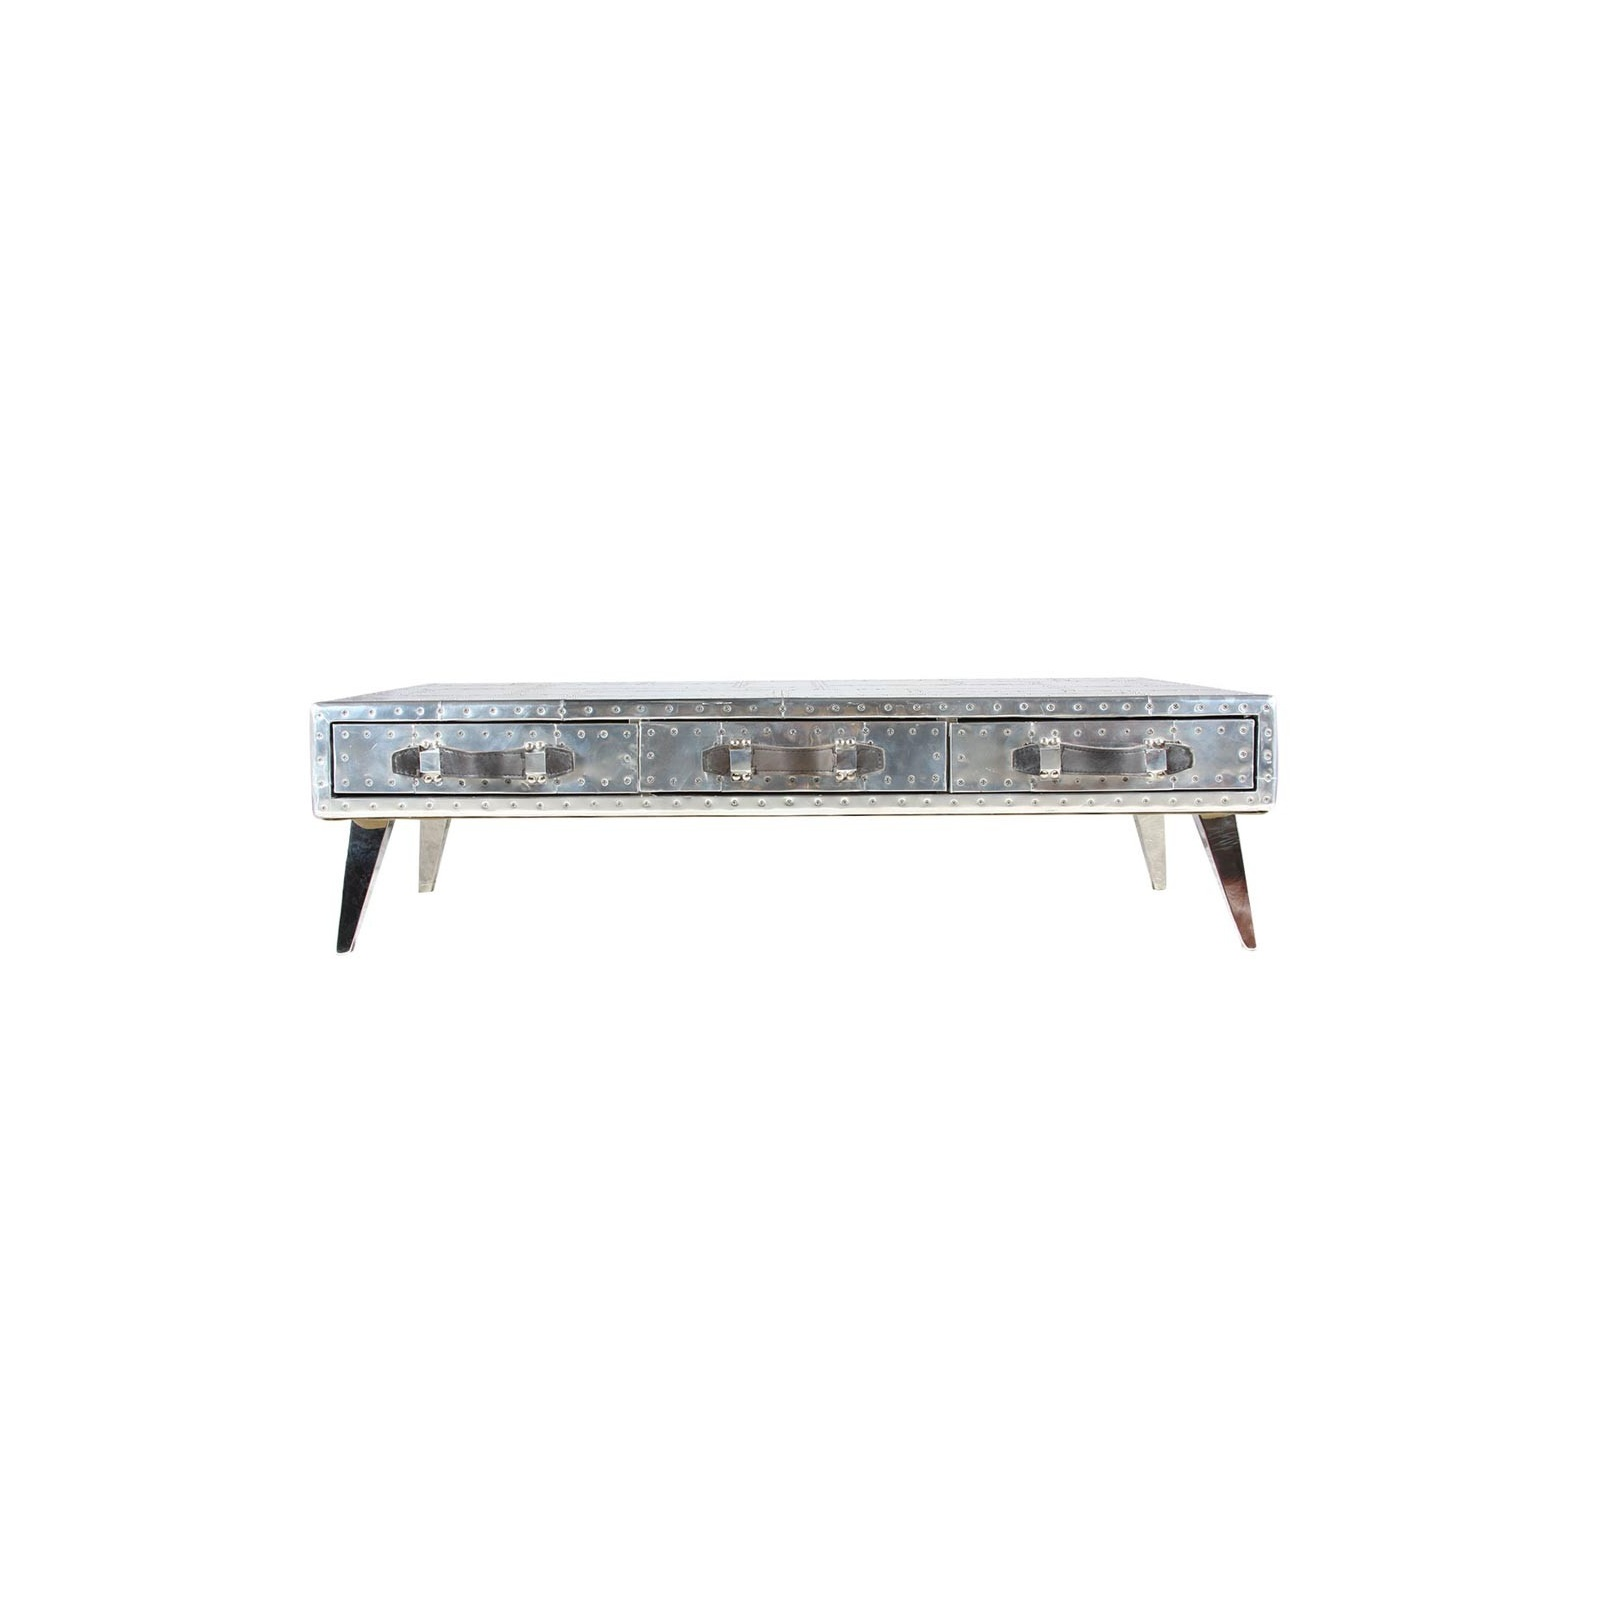 10084bfadab8b7 Table basse retro-Aéro